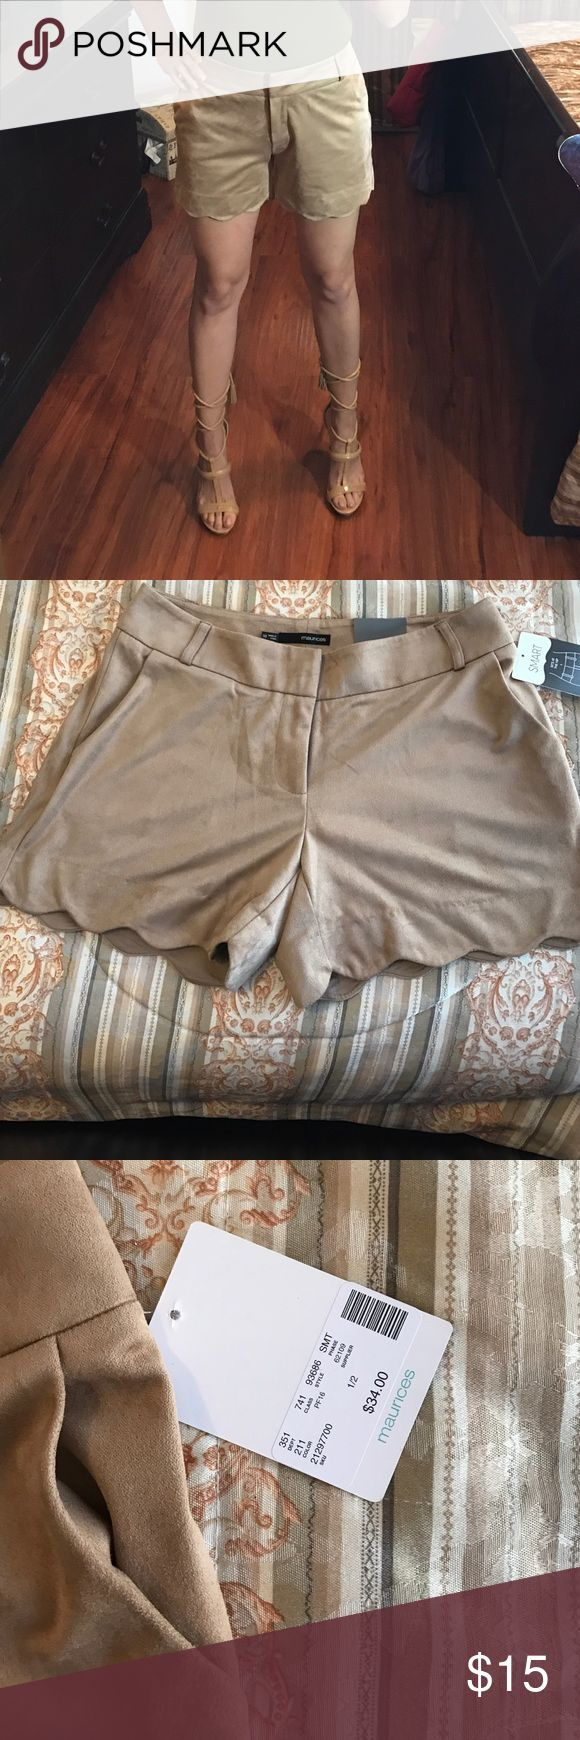 Scalloped shorts Adorable soft nude shorts! New with tags. maurices Shorts